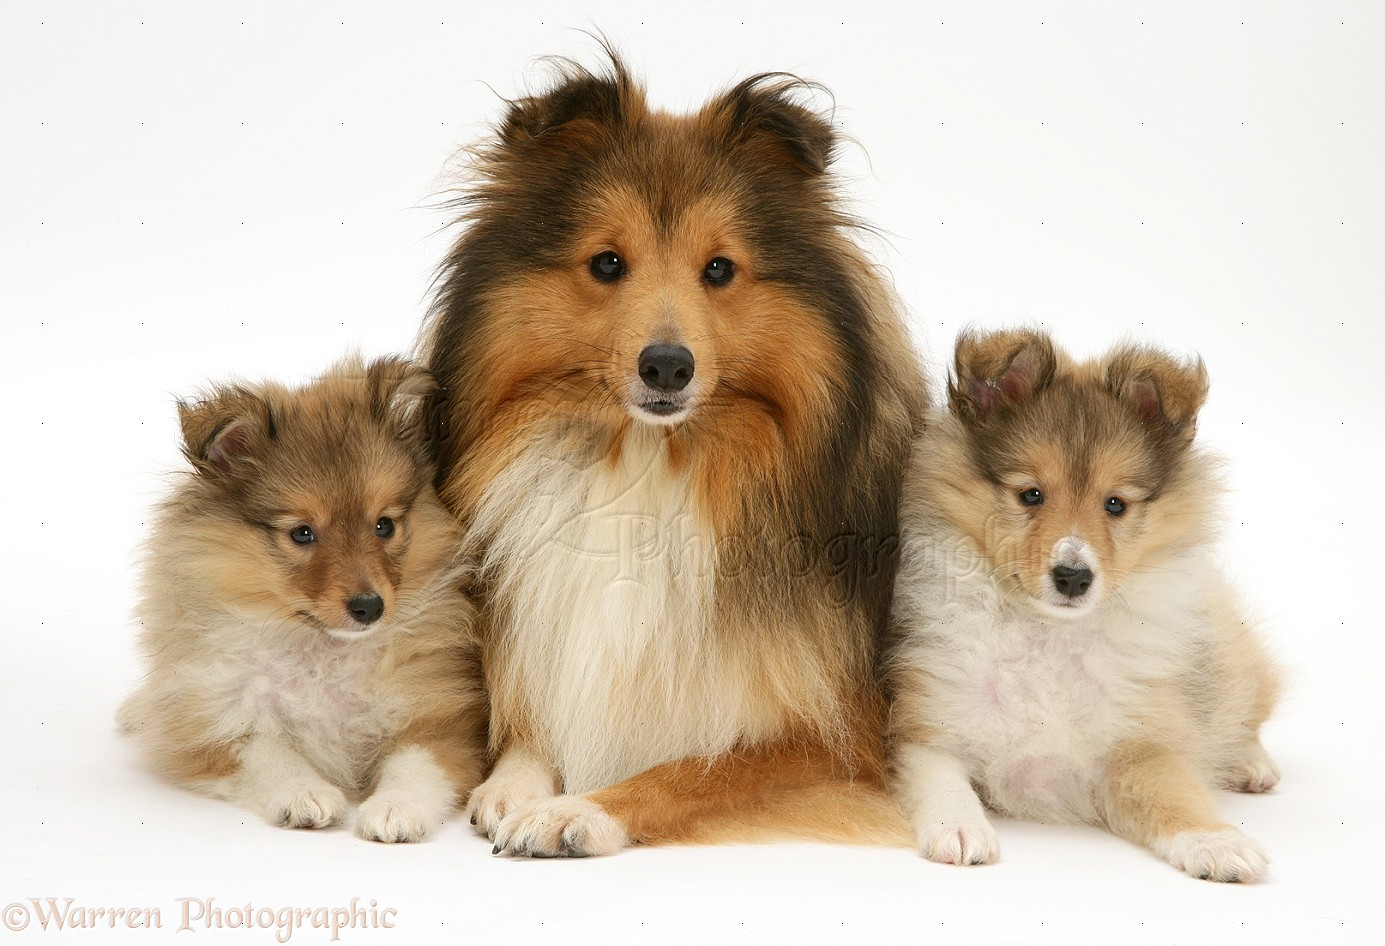 WP11759 Sable Shetland Sheepdog (Sheltie) and pups.